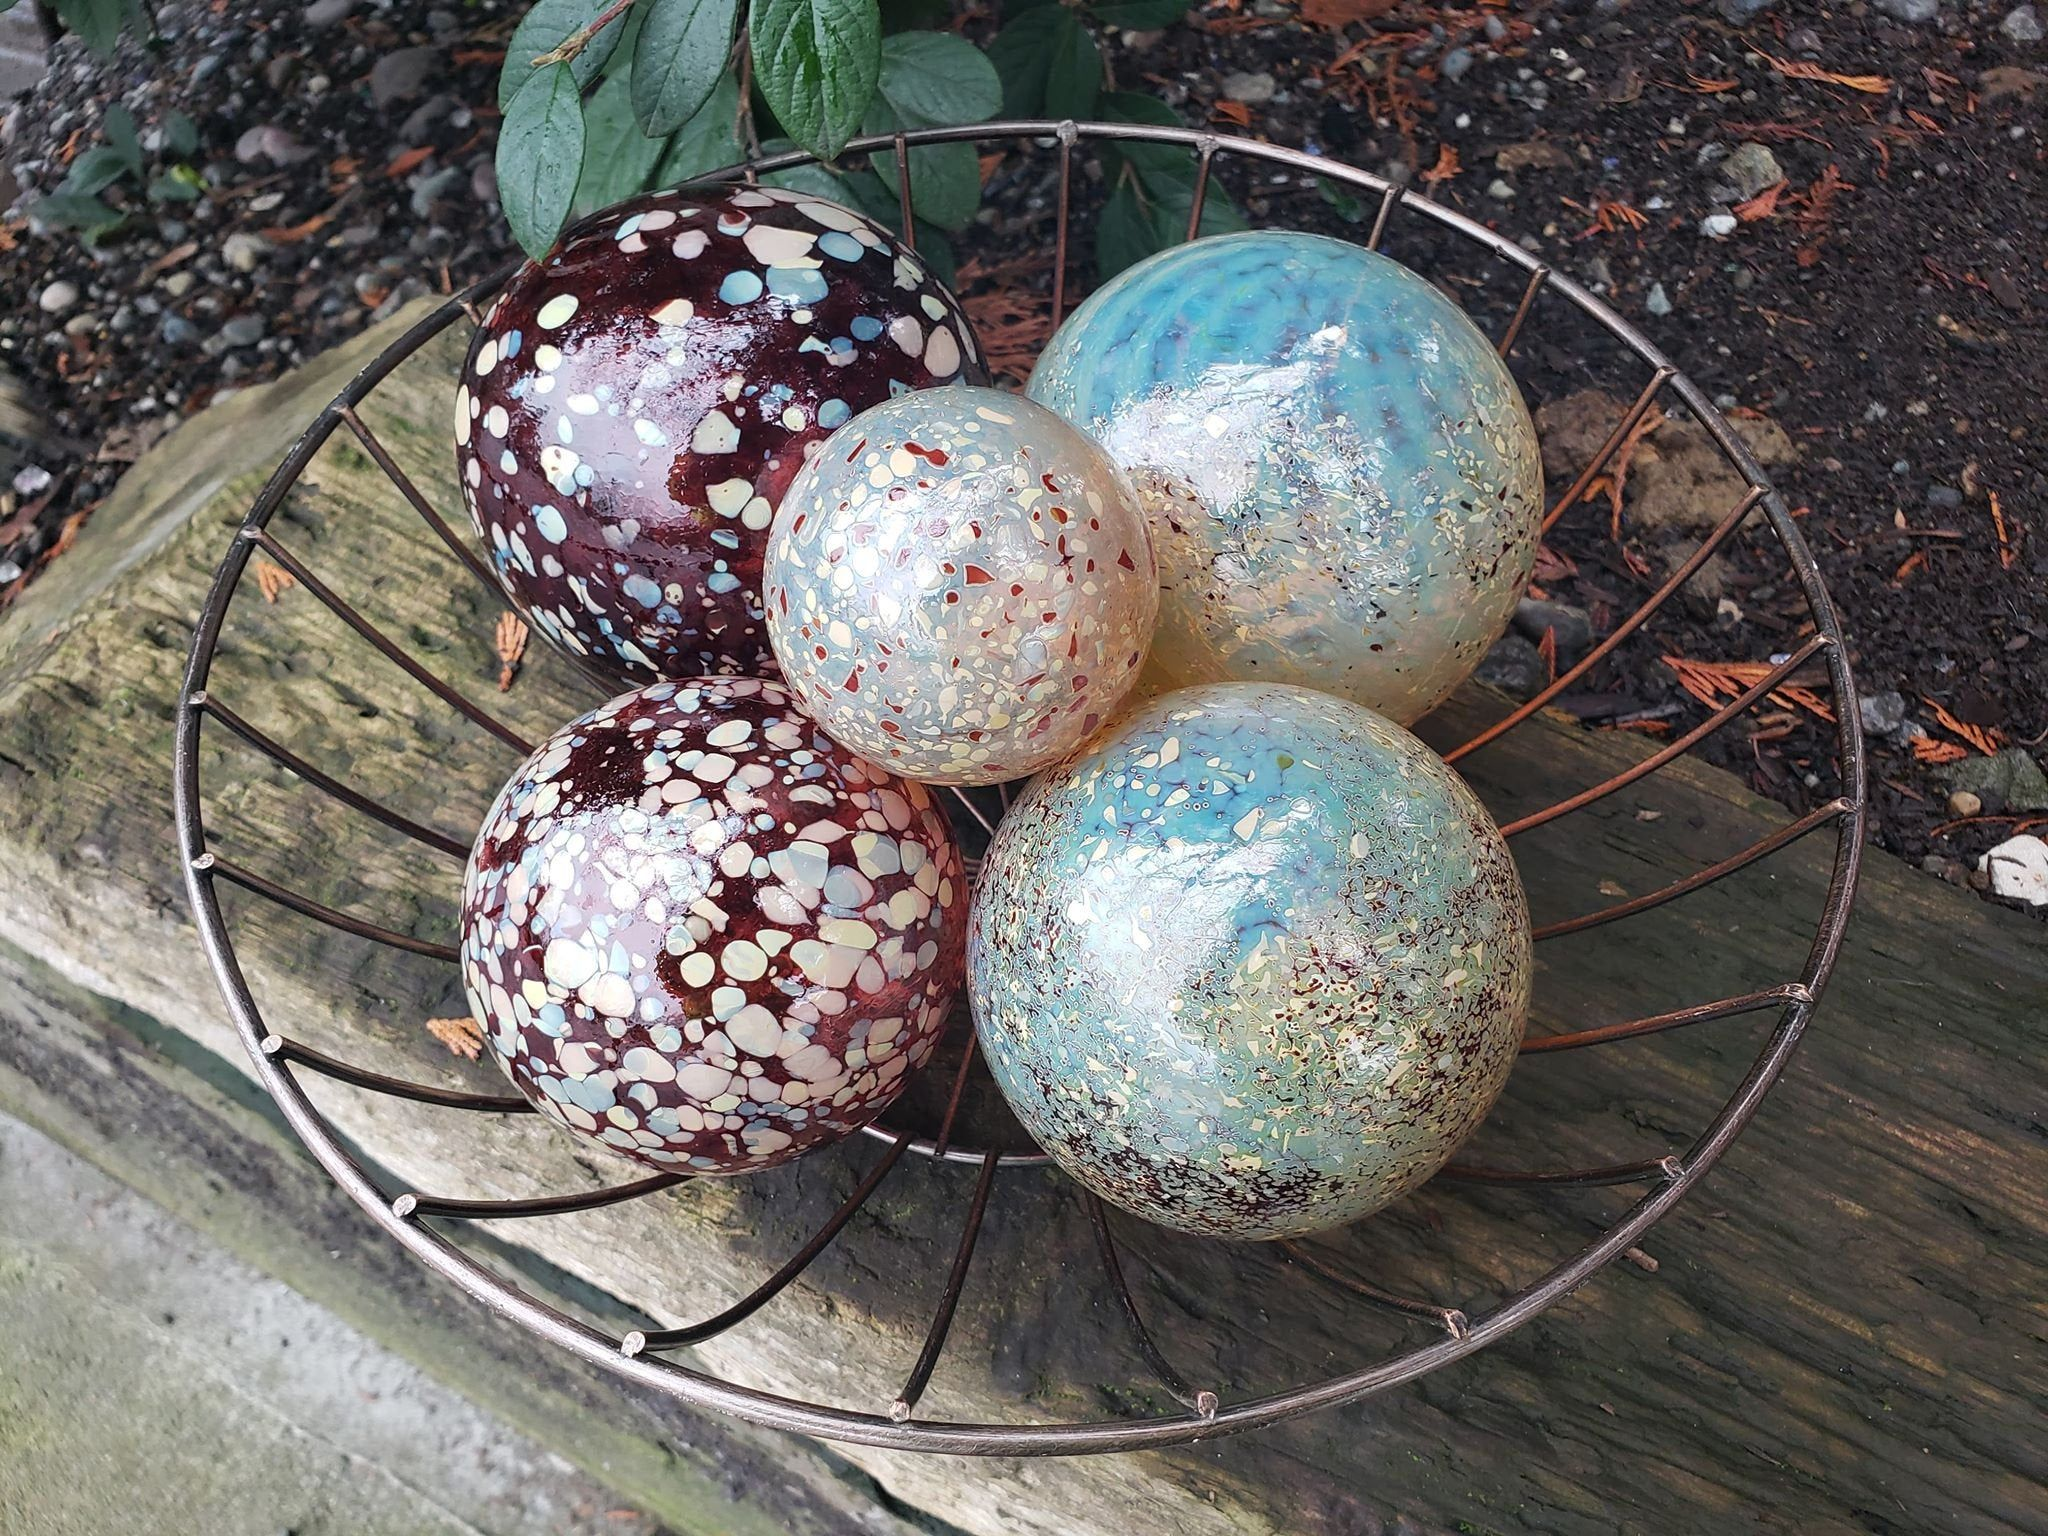 Red And Golden Cream Floats Set Of Five 2 5 4 5 Blown Glass Spheres Decorative Floats For Outdoors In 2020 Glass Fishing Floats Decorative Spheres Glass Blowing